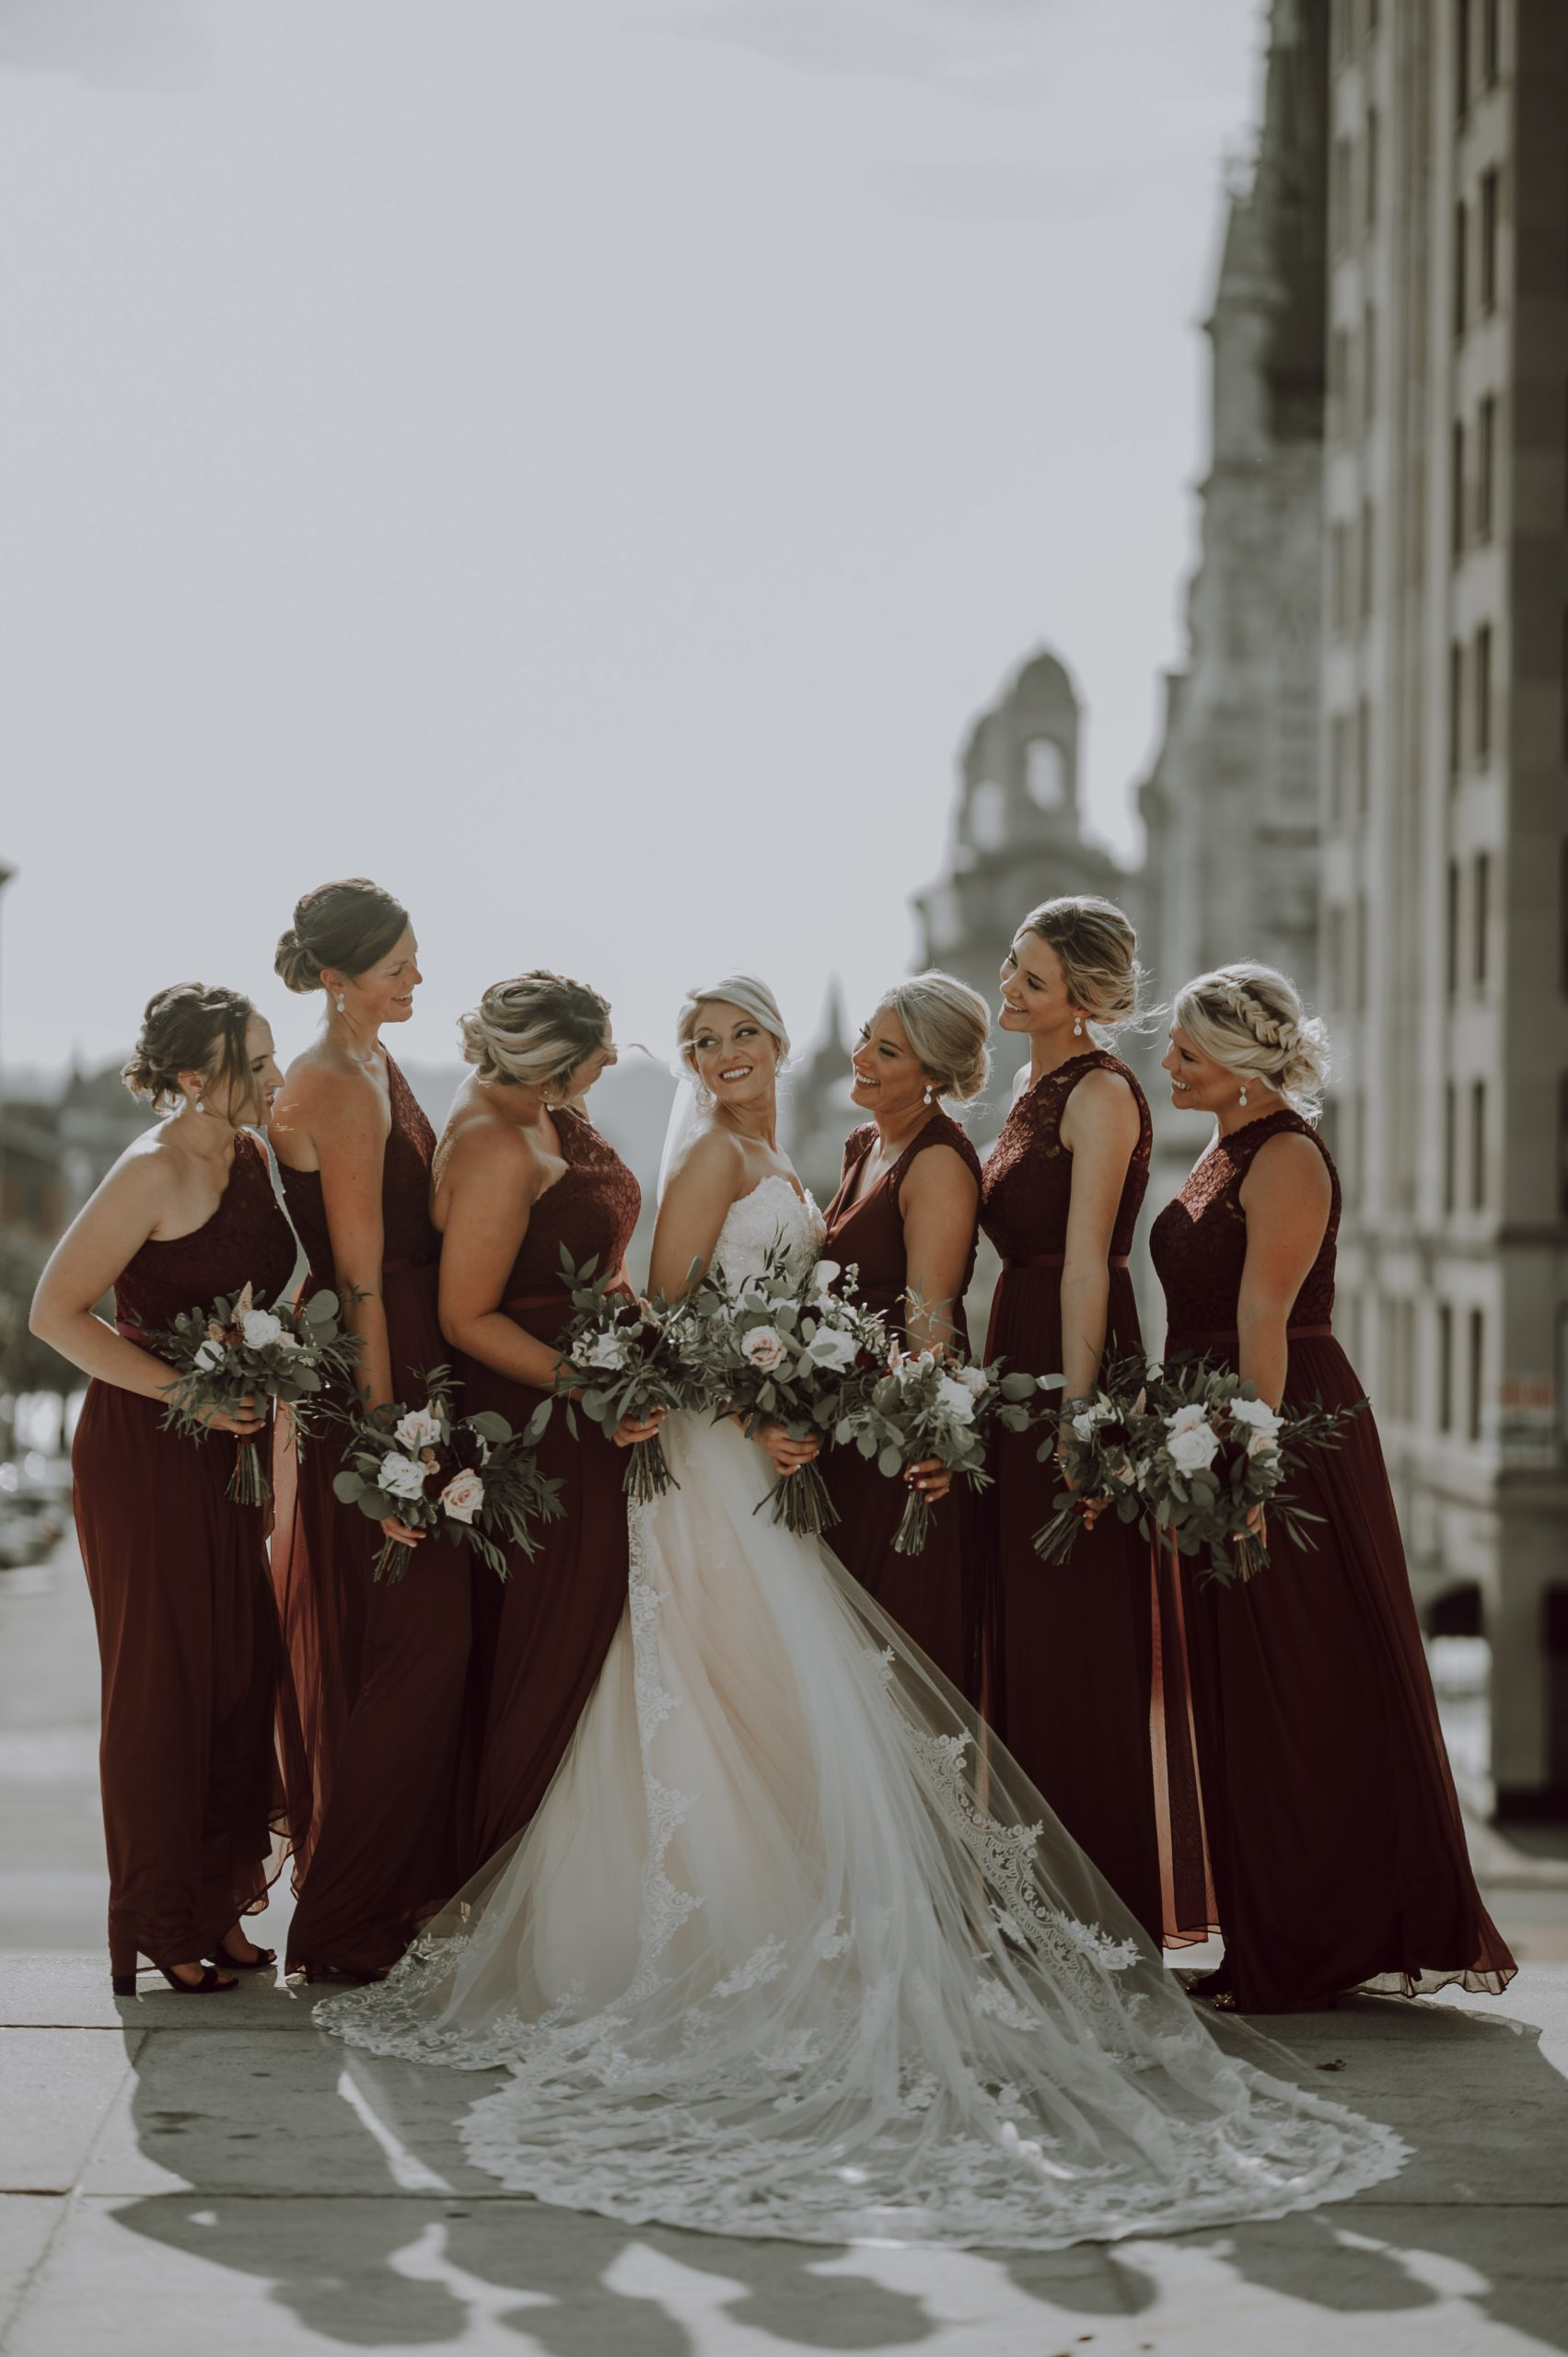 Gazing upon the blushing bride. Captured by Lovefusion Photography at Stock's Manor in Mechanicsburg, PA. Featured on Dream Weddings.